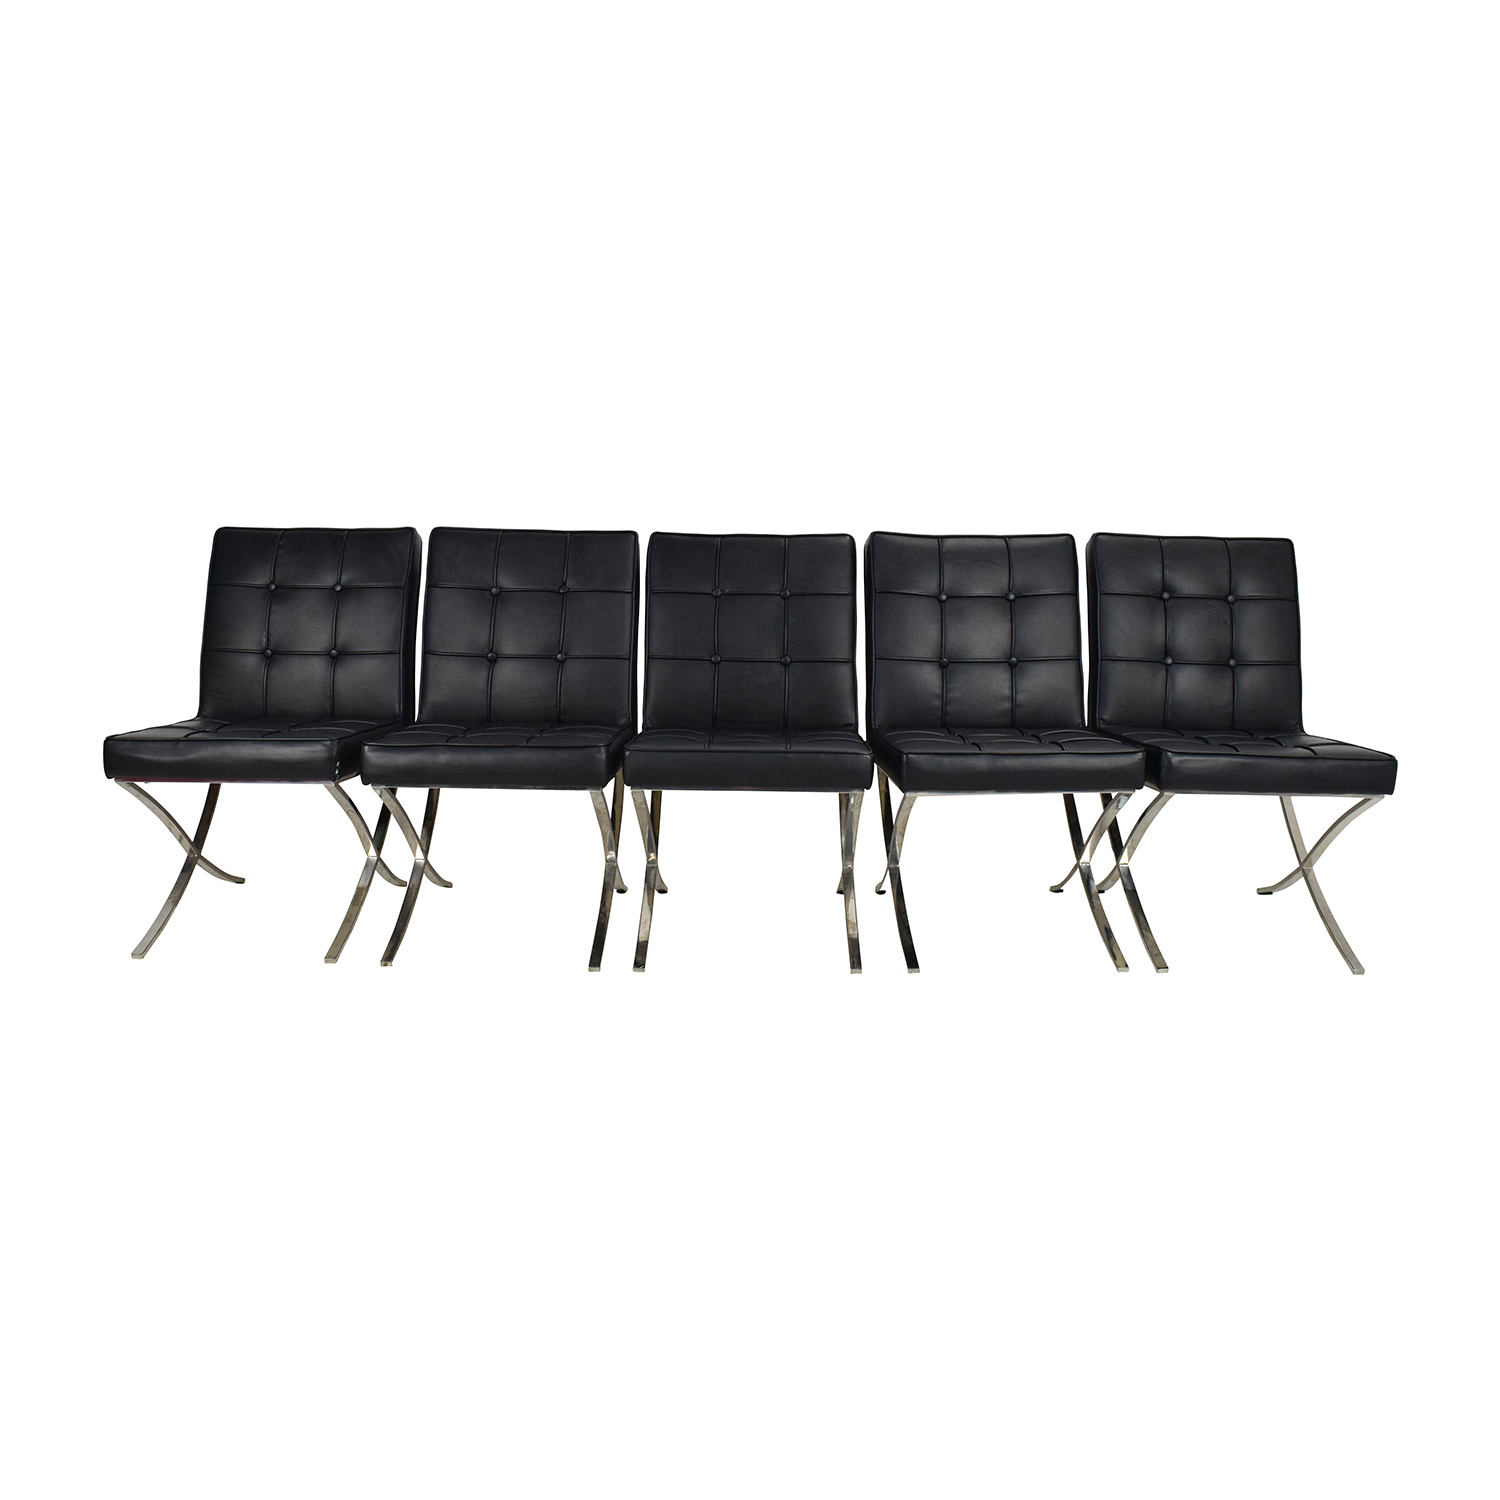 Black Leather Conference Room Chair Set dimensions